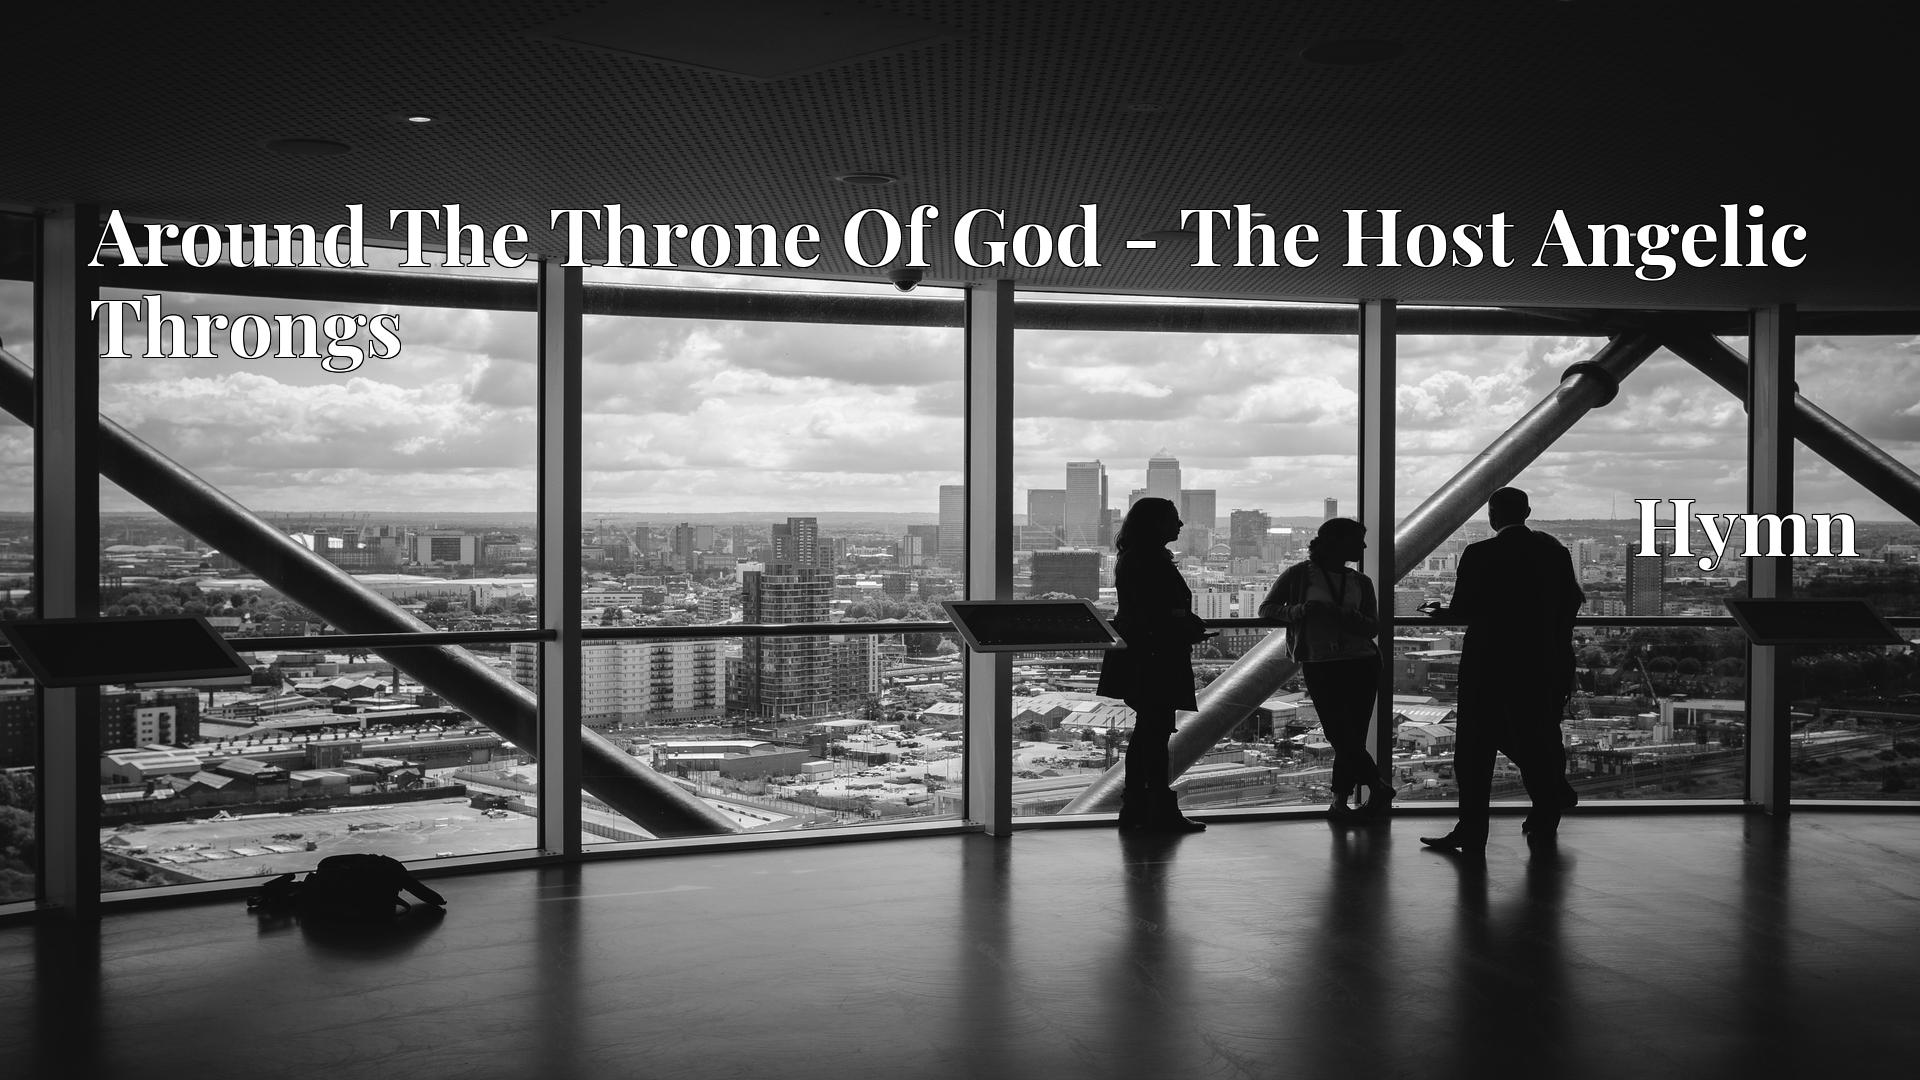 Around The Throne Of God - The Host Angelic Throngs - Hymn